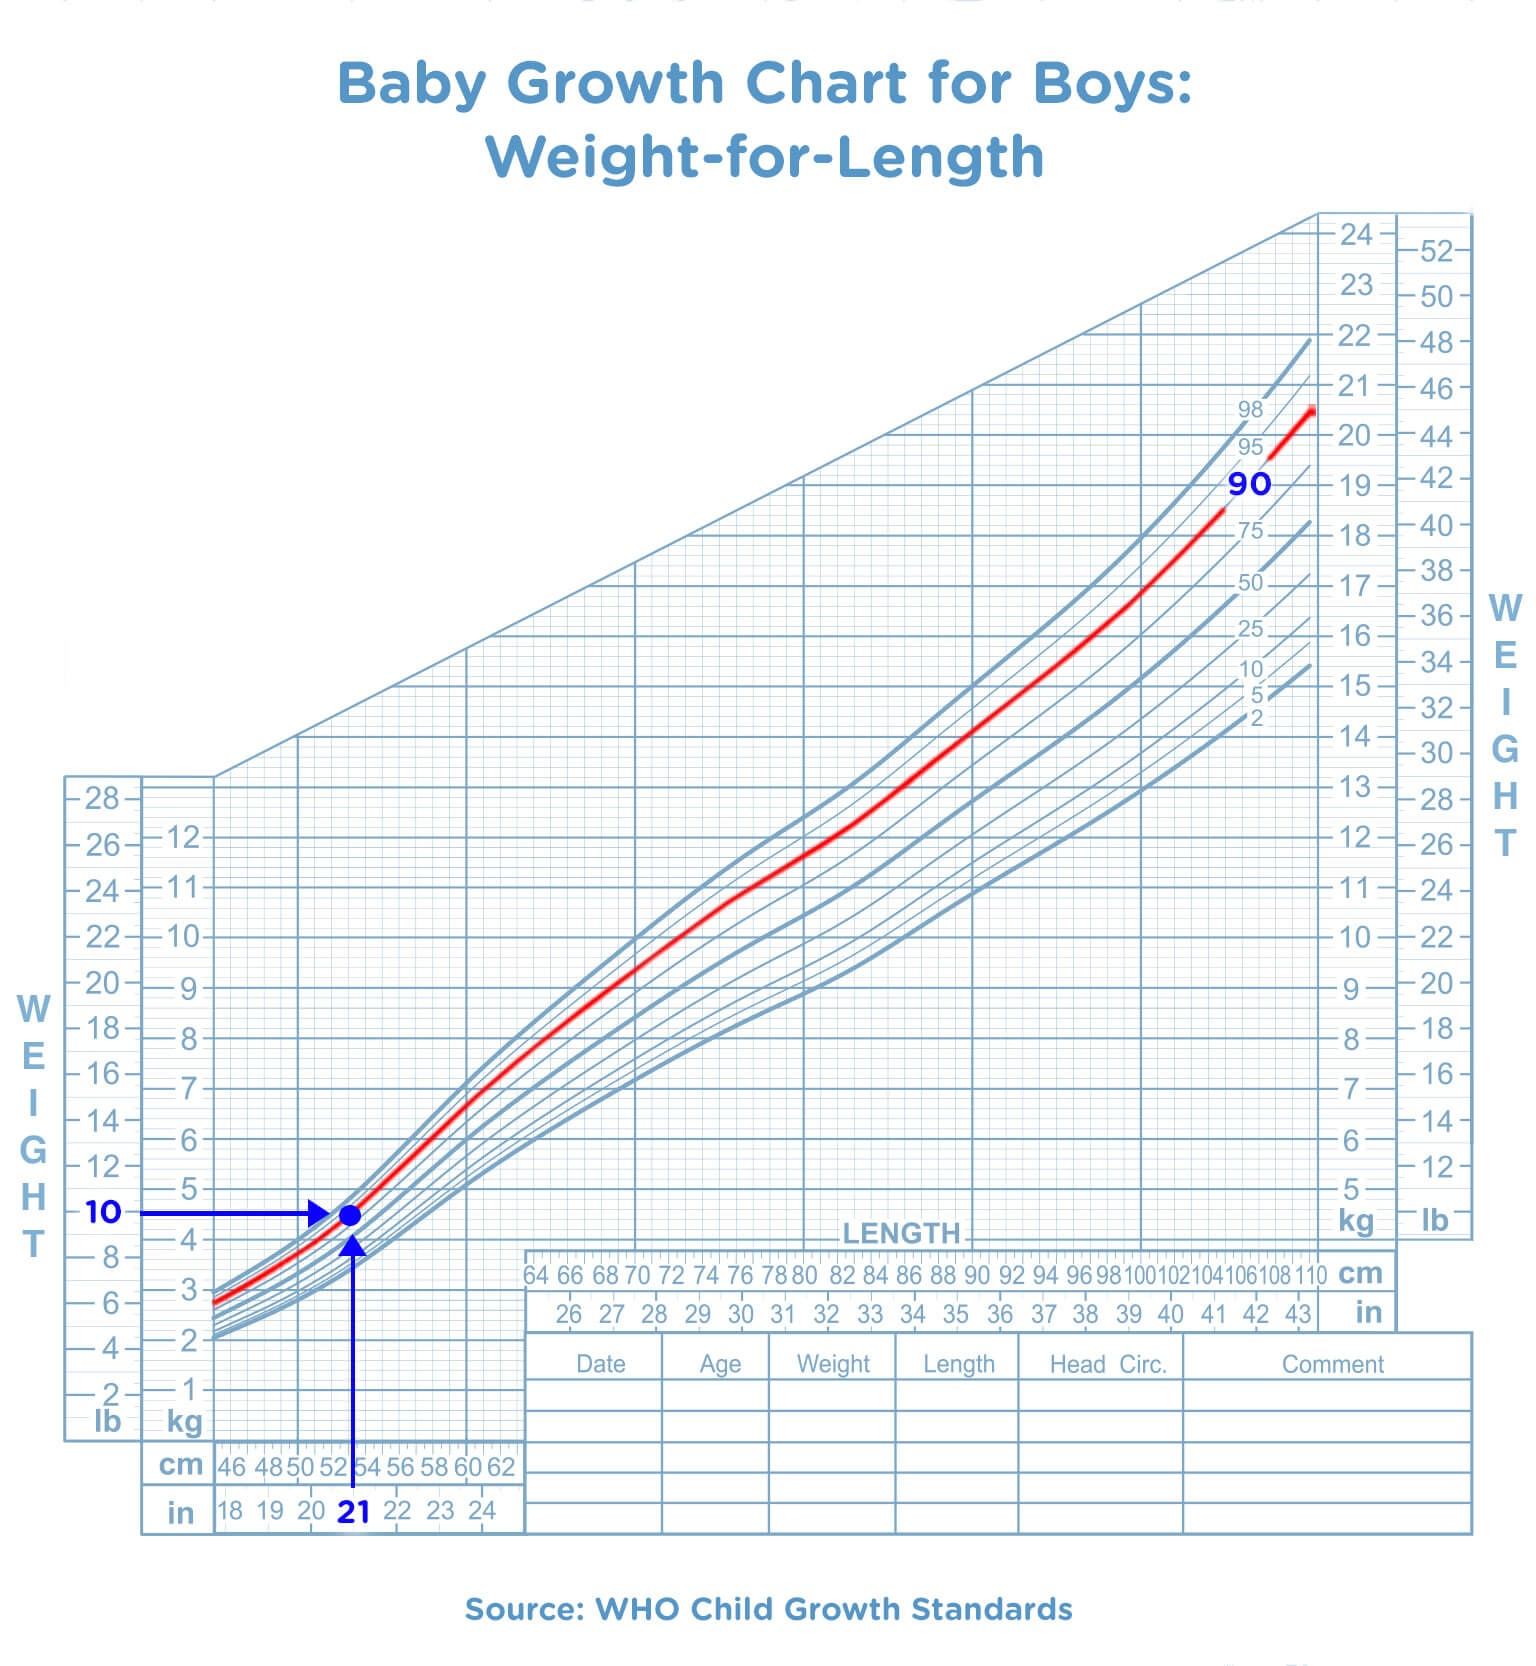 Baby Growth Chart for Boys